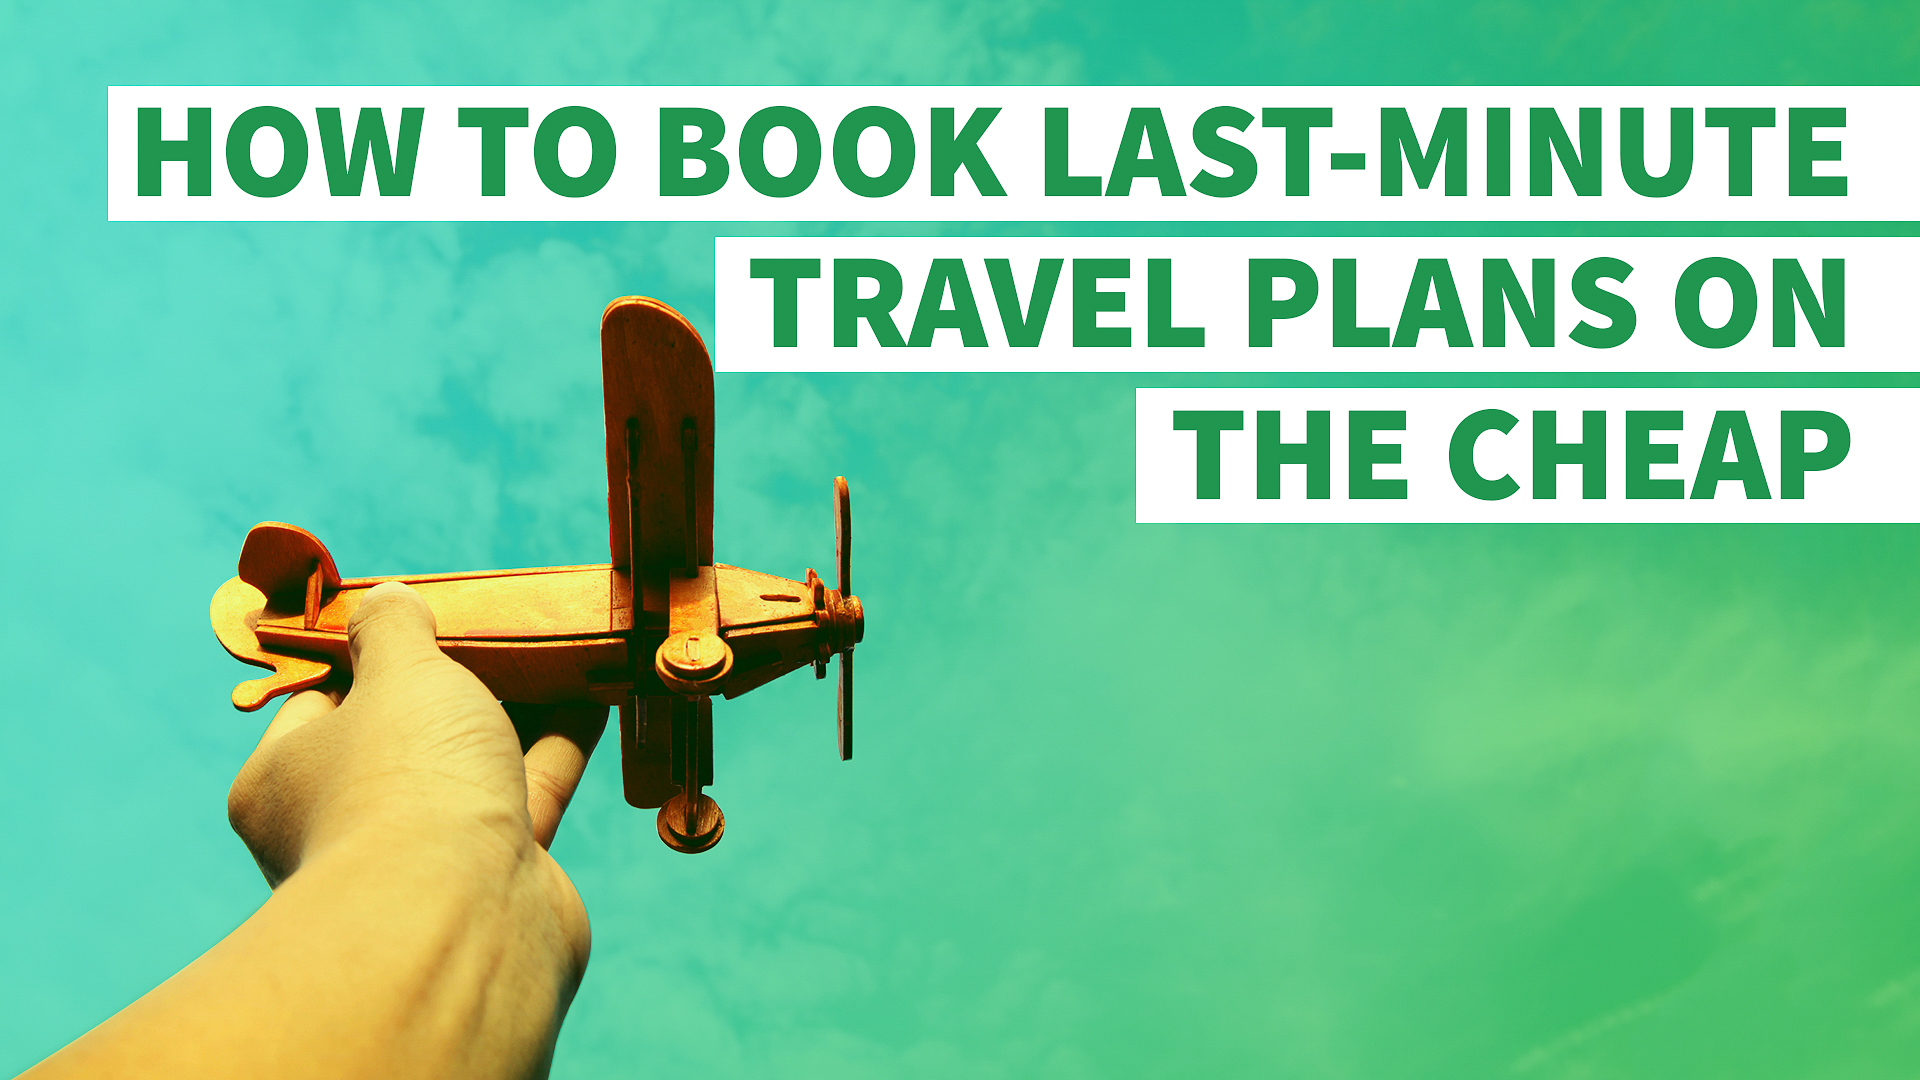 How to Book LastMinute Travel Plans on the Cheap